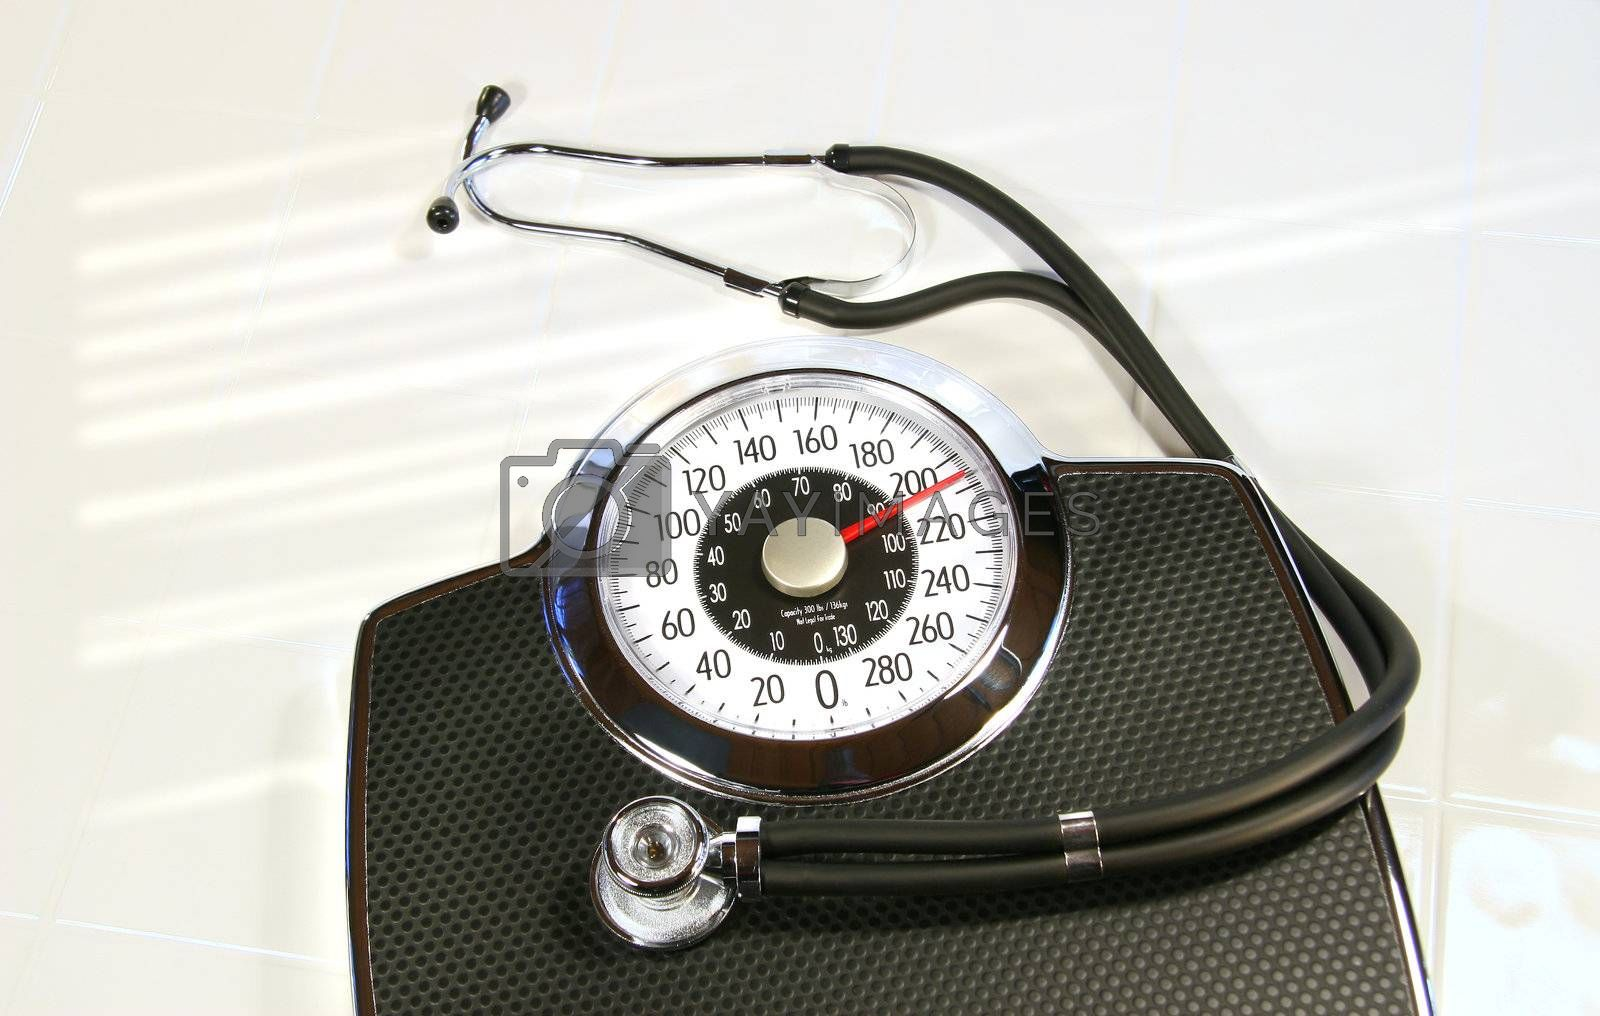 Weight scale with sthetescope on white tile